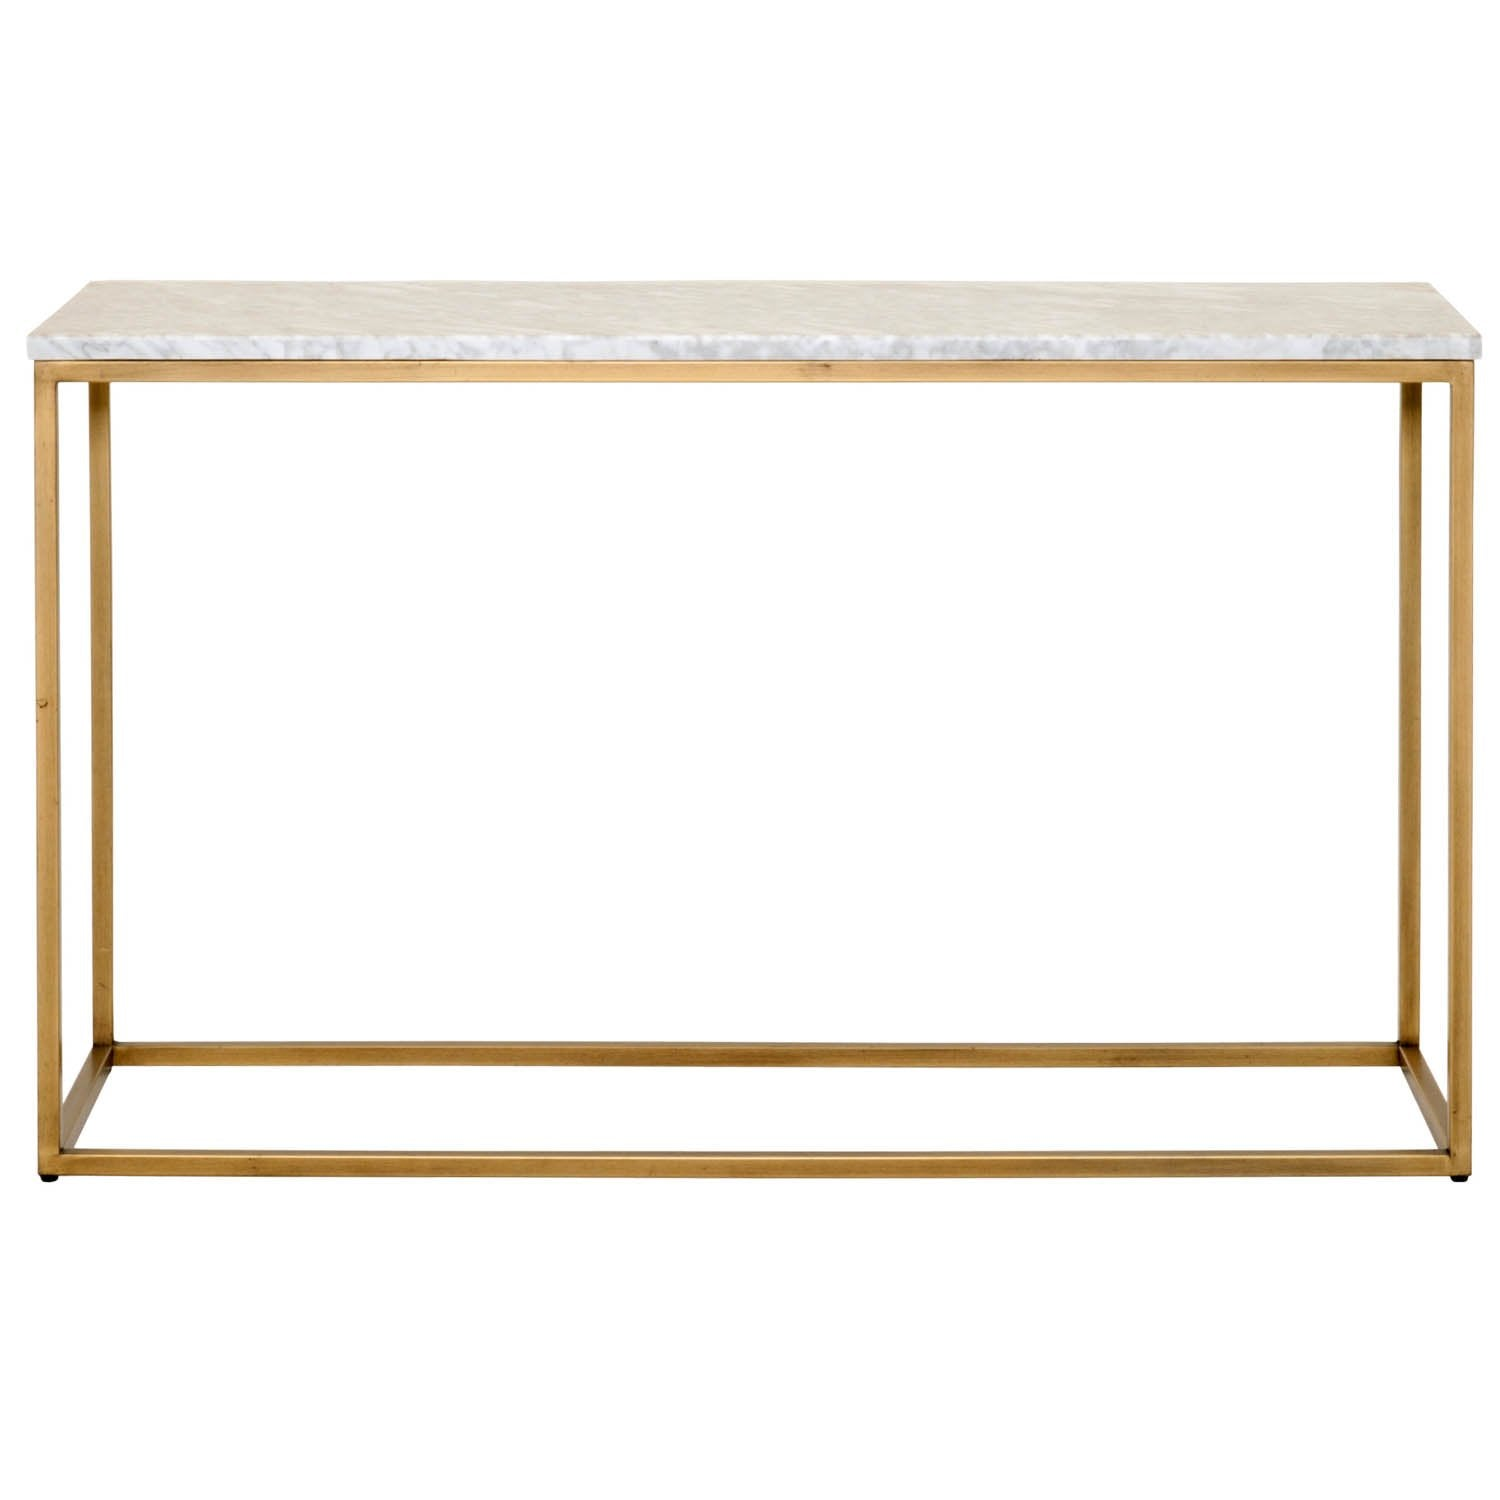 Carrera Console Table in White Carrera Marble